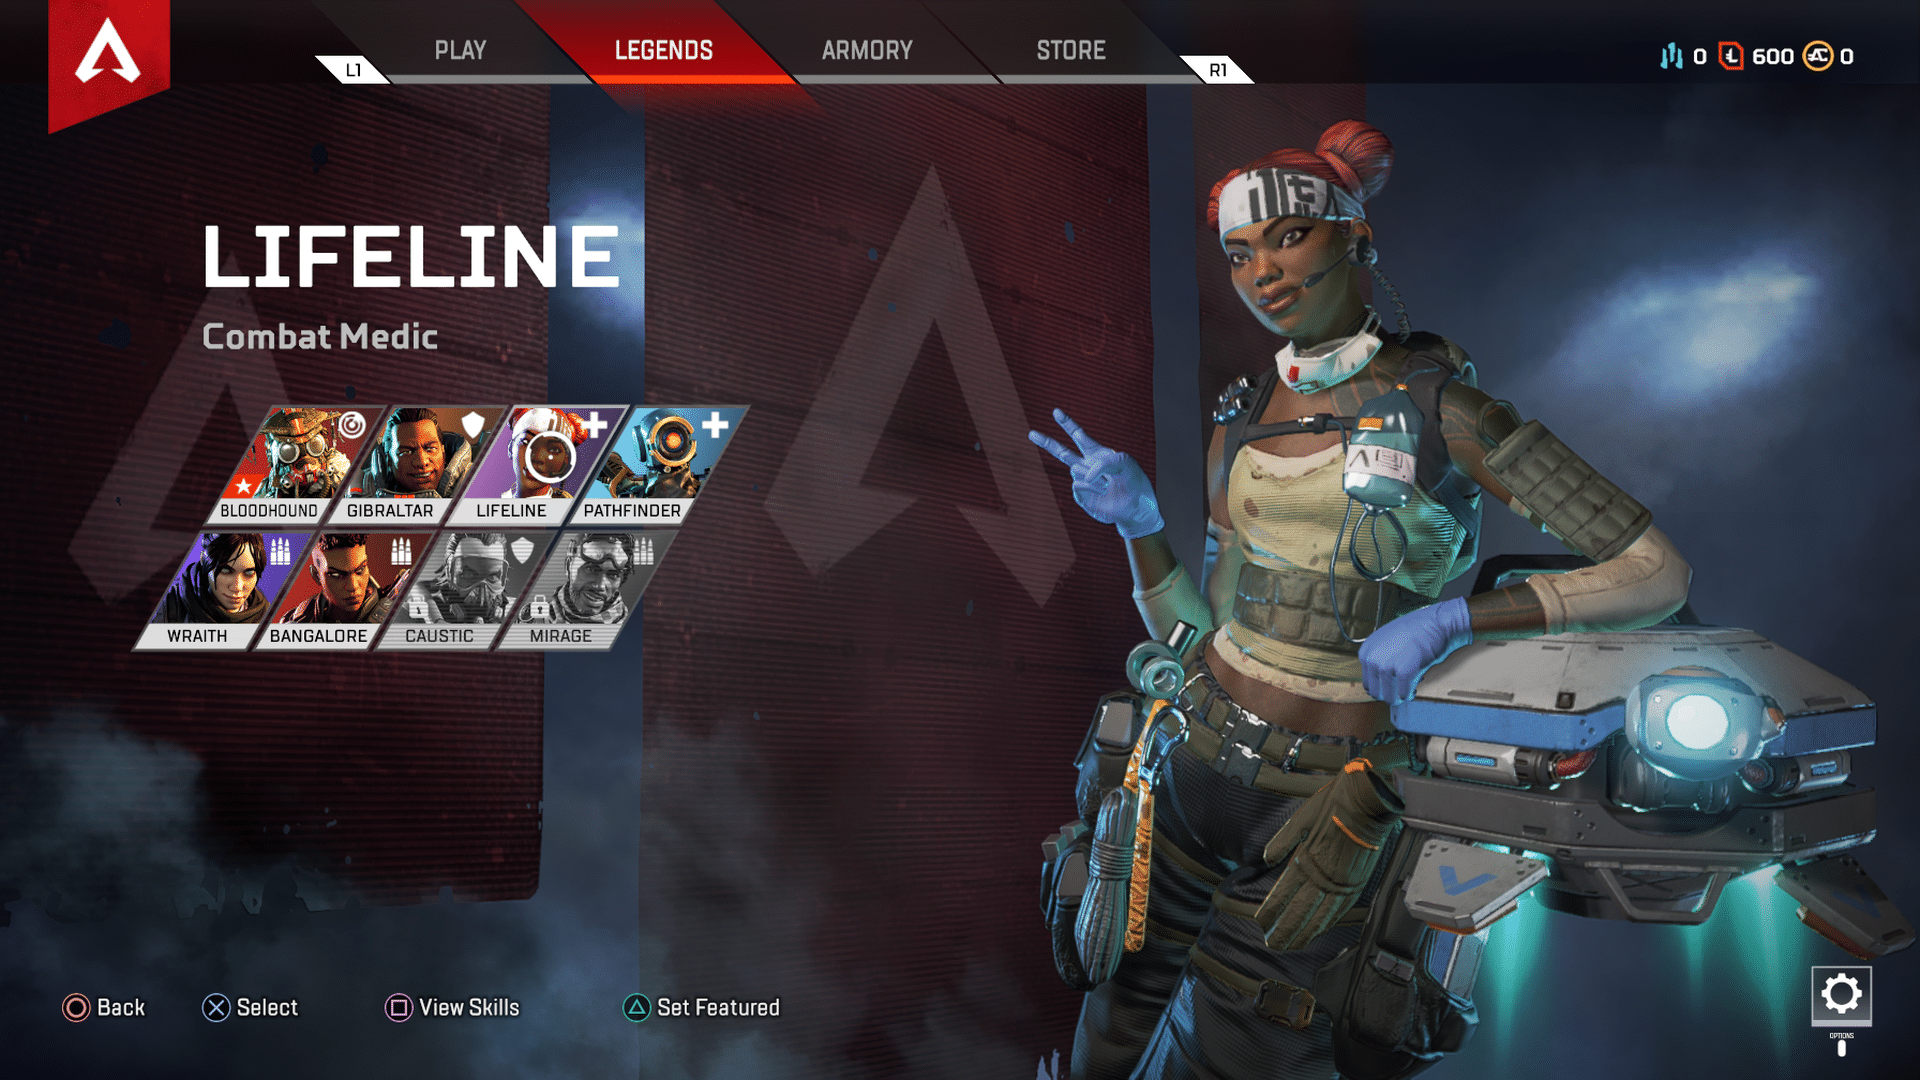 The character roster in Apex Legends